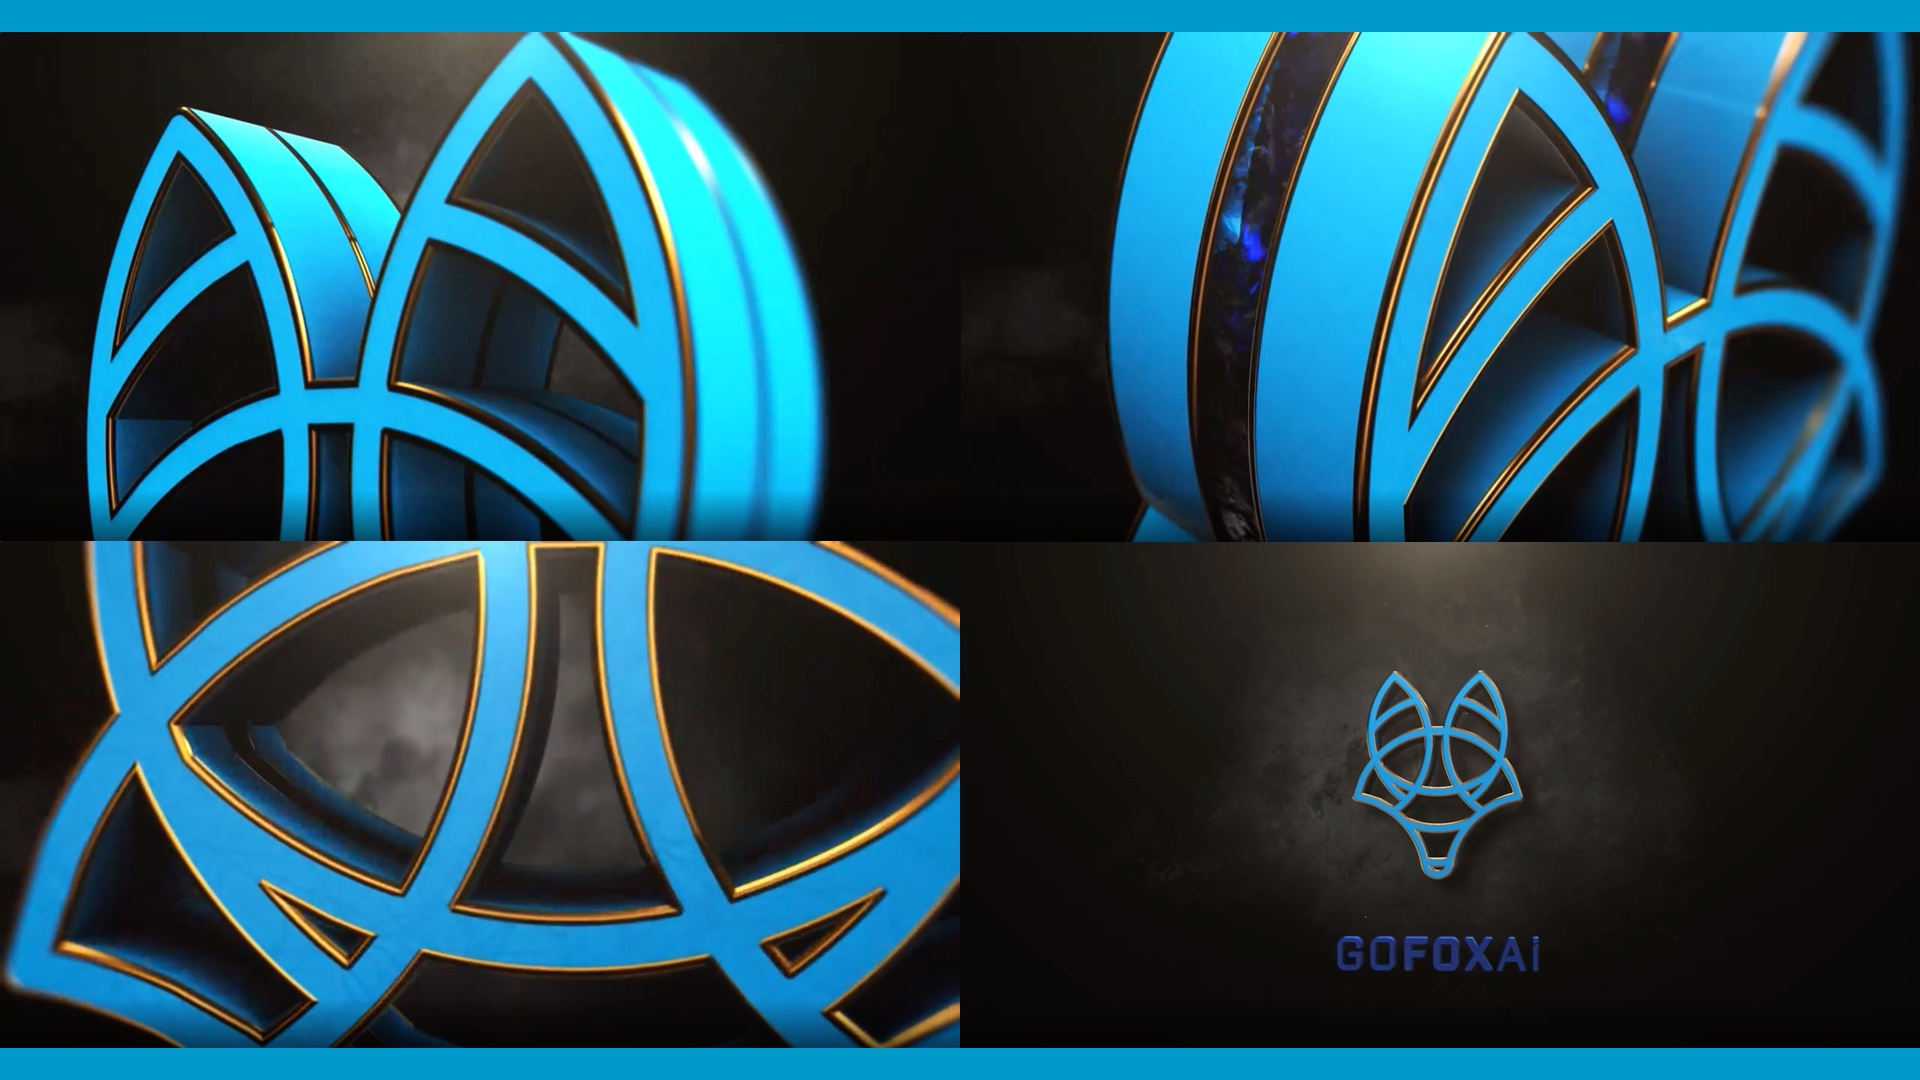 Presenting a logo sequence; four images of the GOFOXAI's logo from different angles on a dark wall.